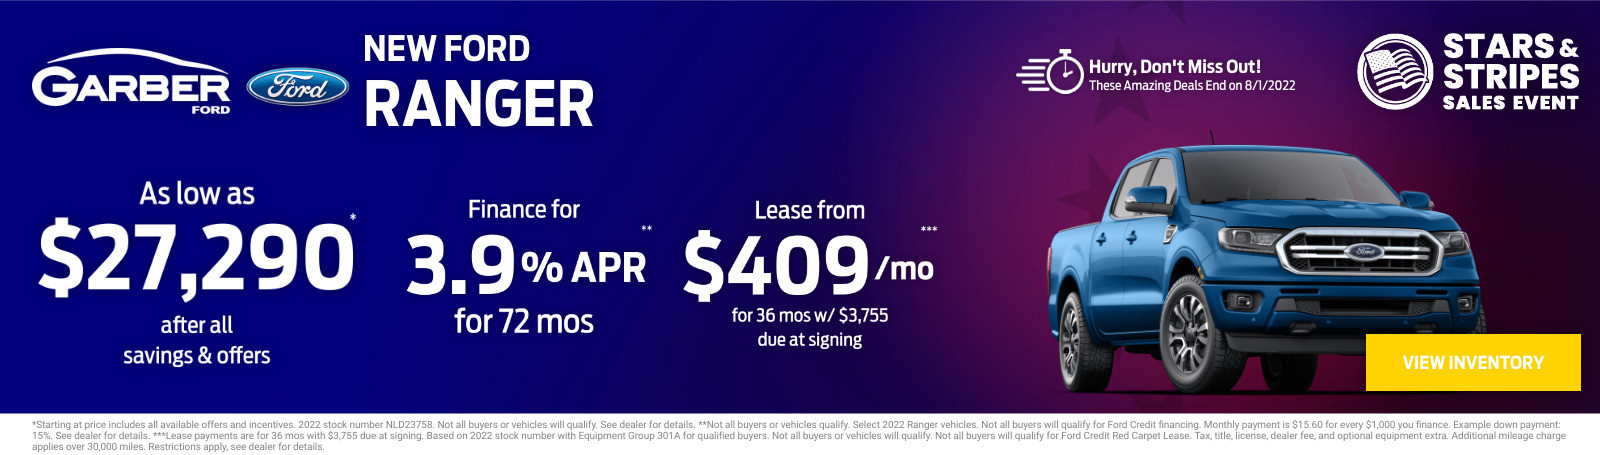 New Ford Ranger Current Deals and Offers in Green Cove Springs, FL